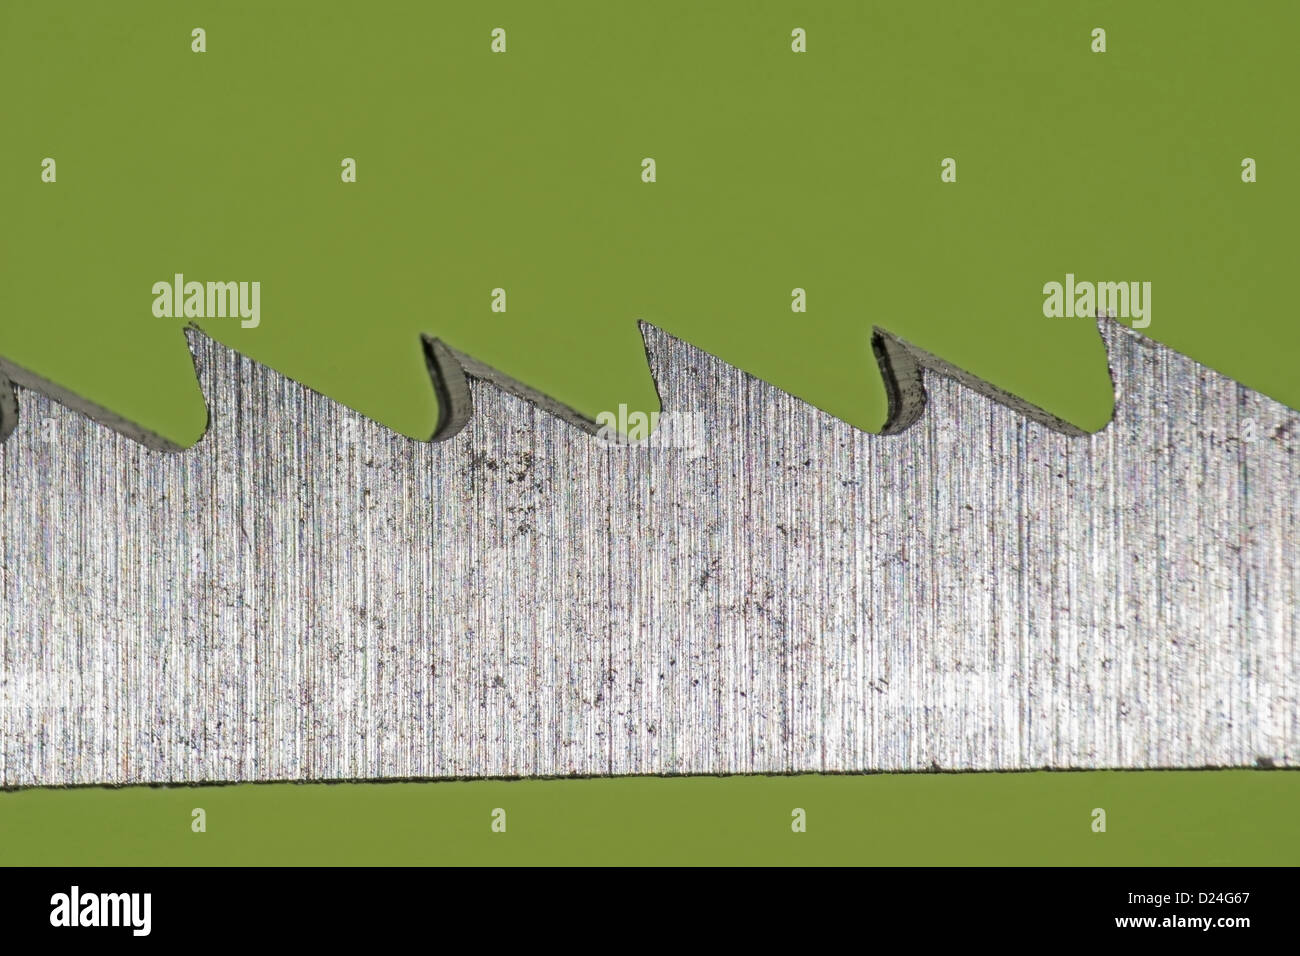 Macro shot of a cutting blade used in a jigsaw power tool - Stock Image